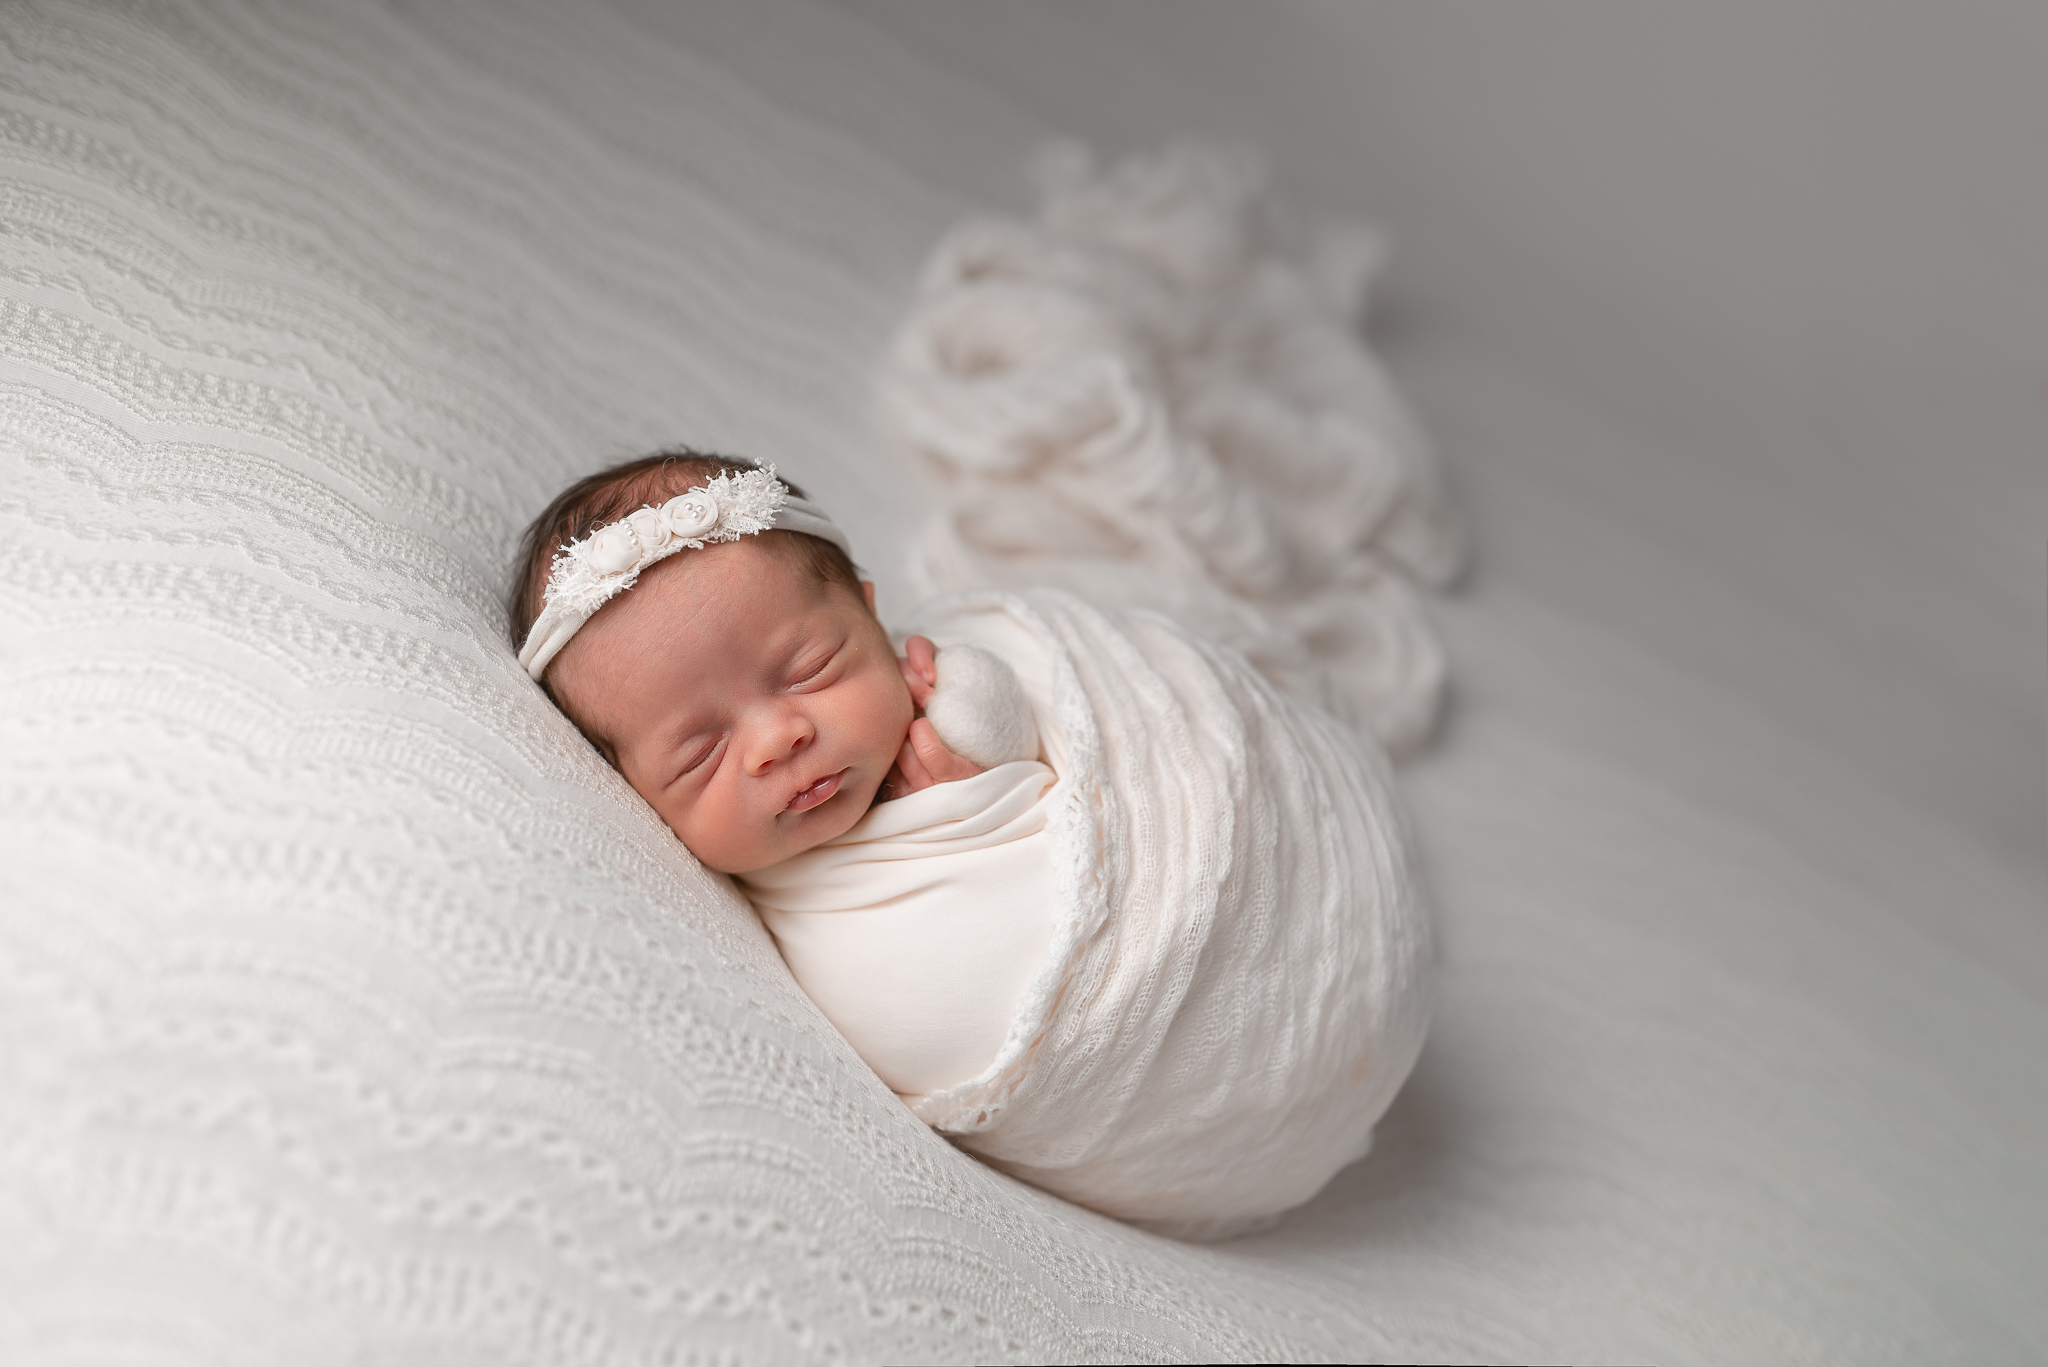 Newborn113NaomiLuciennePhotography032019-Edit.jpg